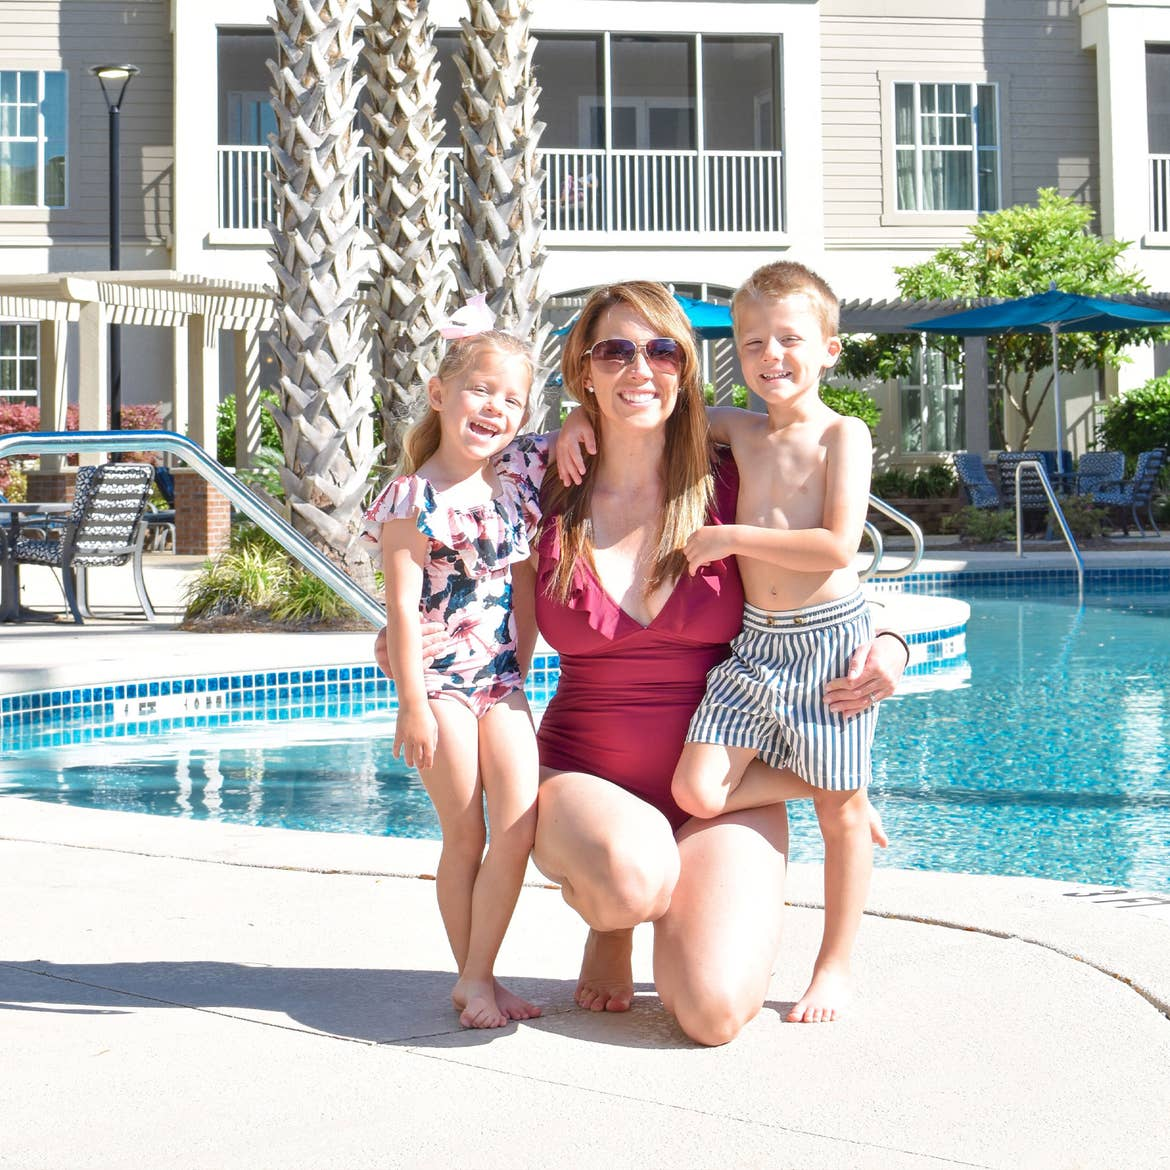 Featured Contributor, Brianna Steele (middle) stands with her children near the pool at our South Beach resort in Myrtle Beach, SC.